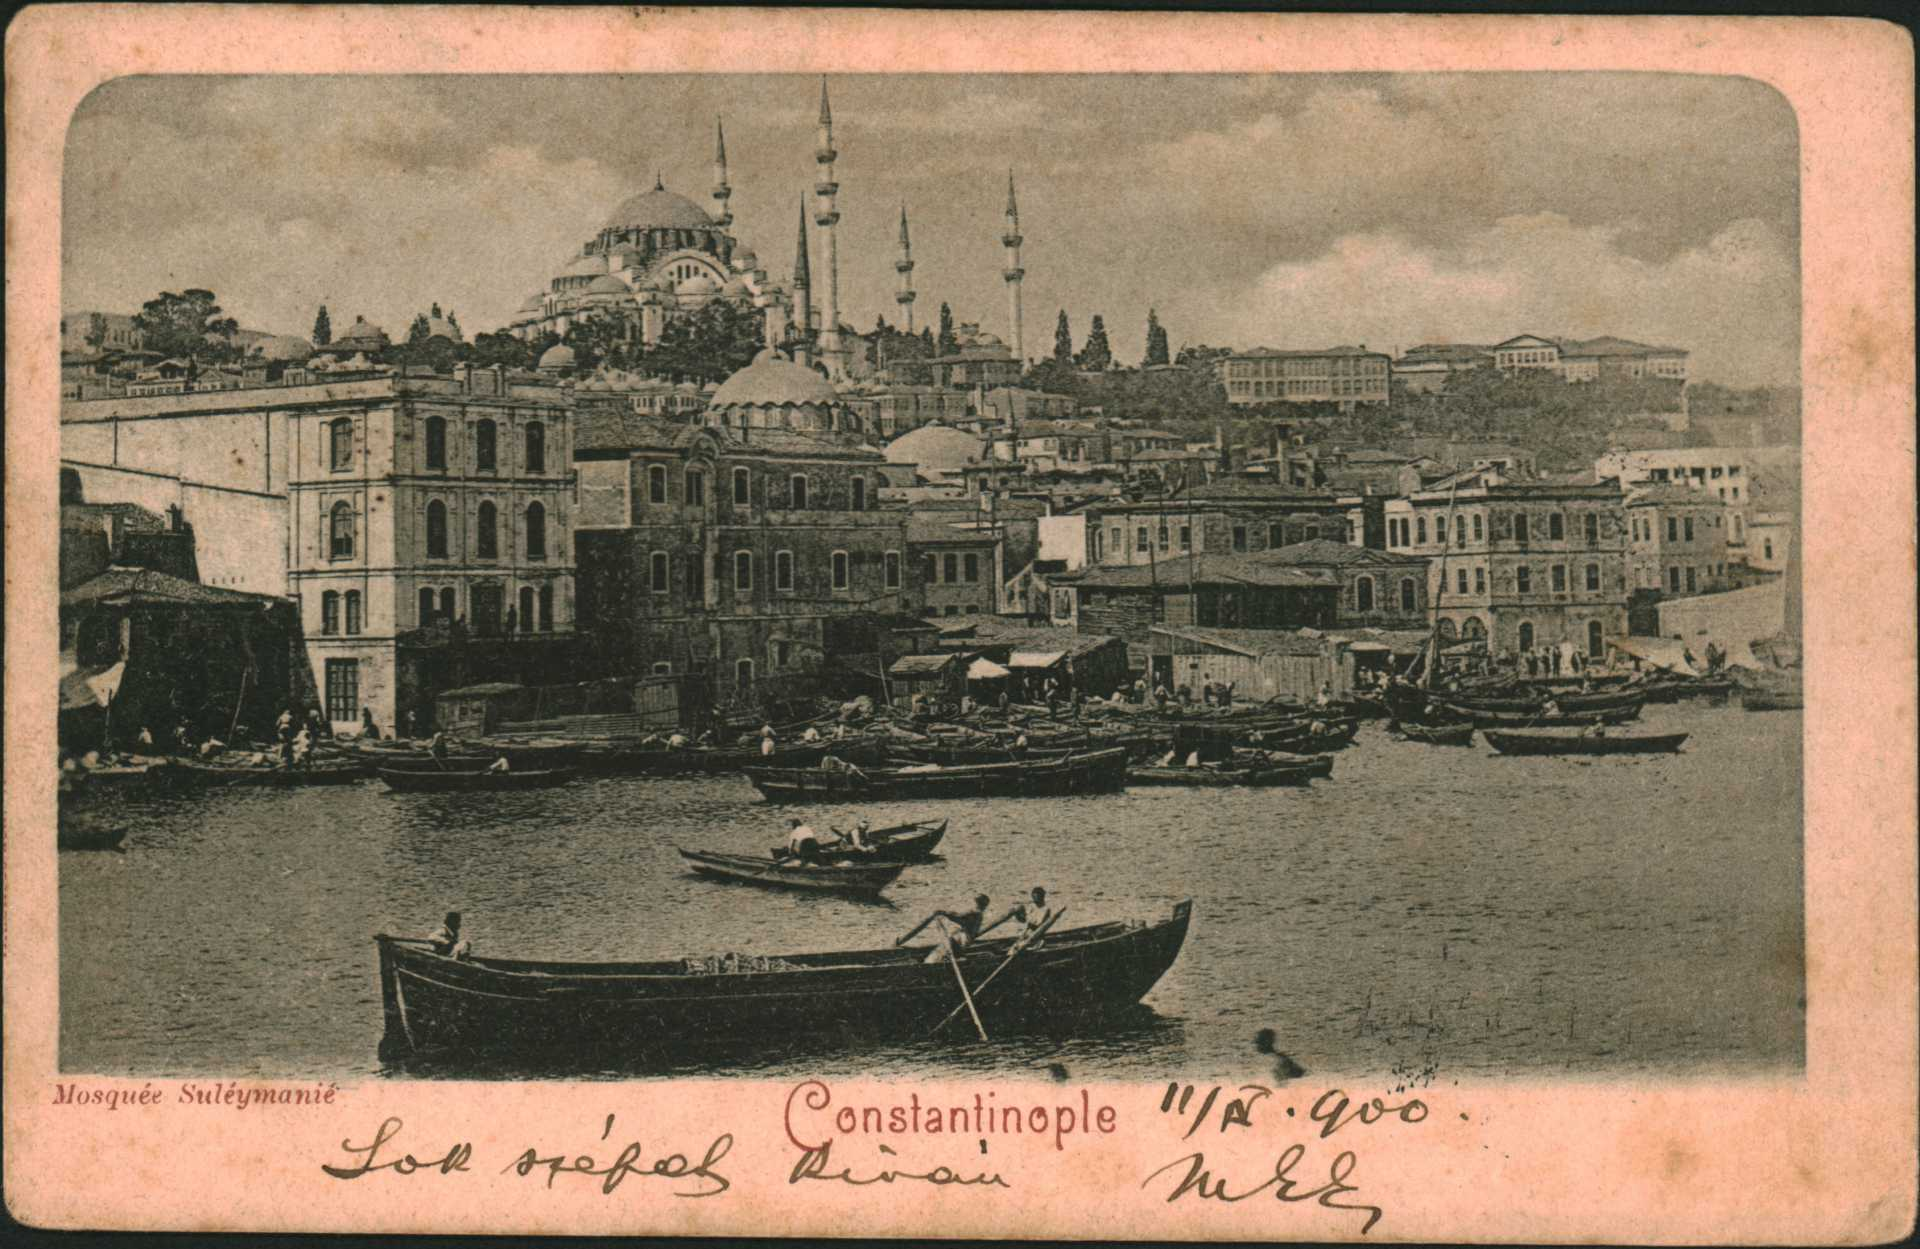 Constantinople. Mosquee Suleymanie